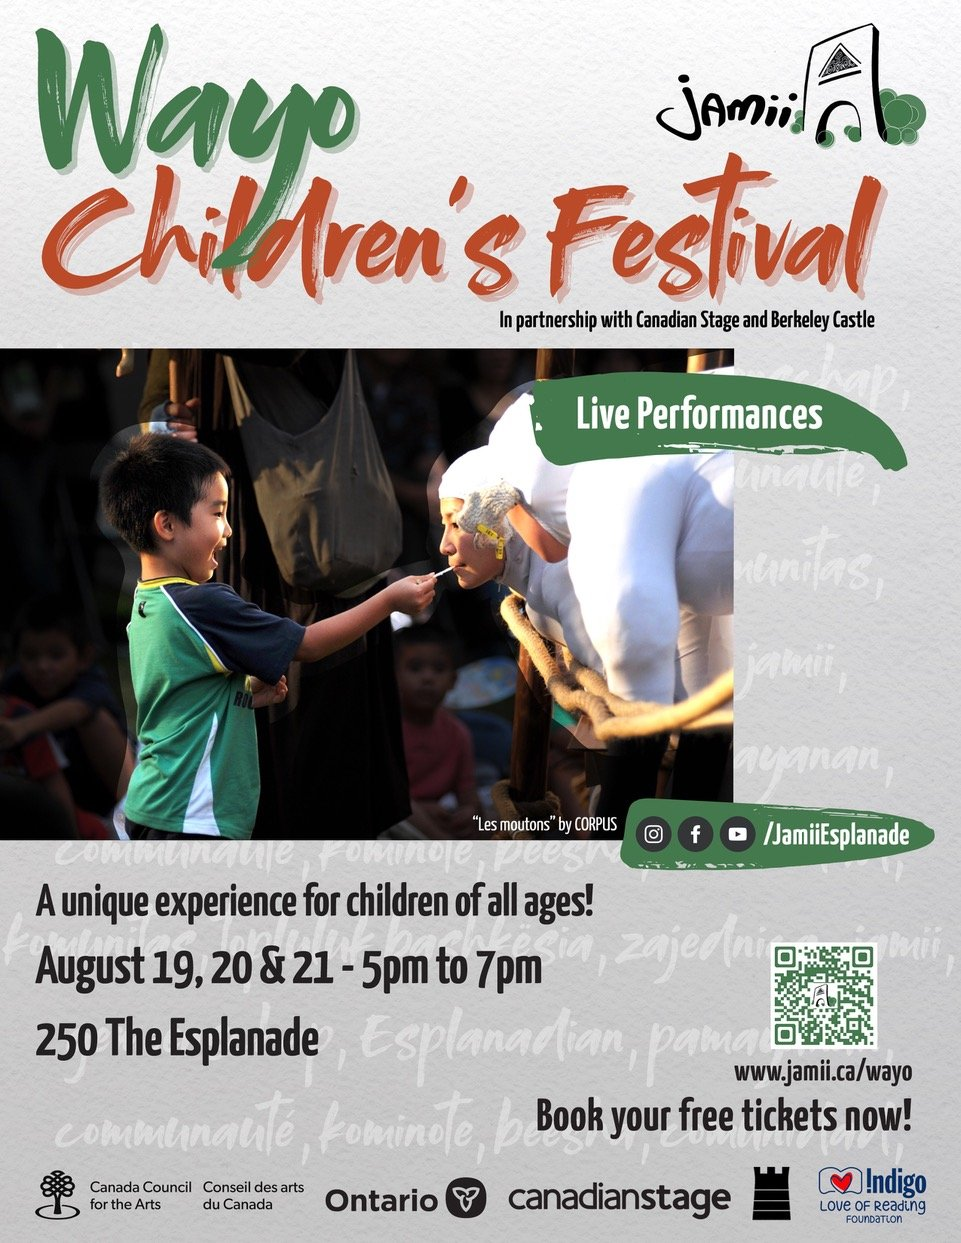 Jamii Second Annual Children's Festival: Wayo promotional poster